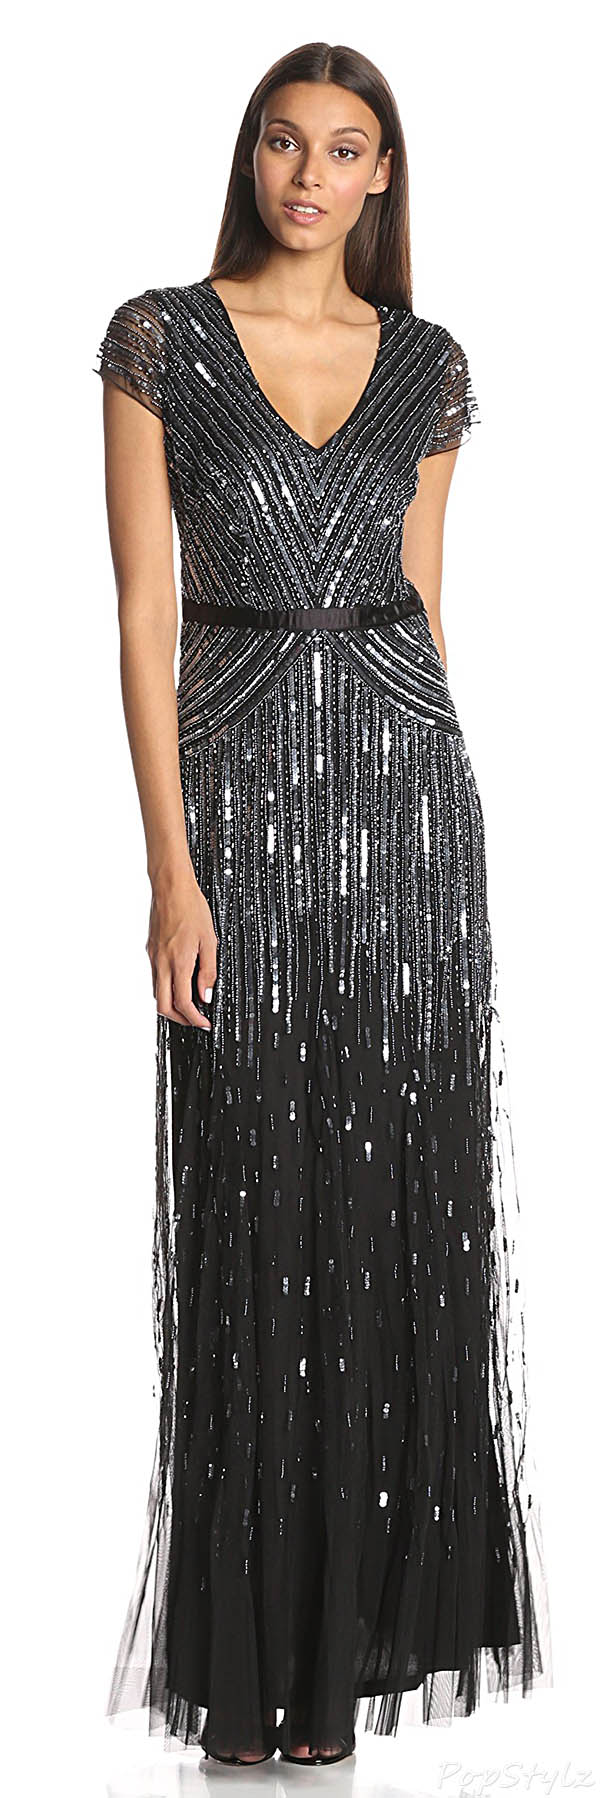 Adrianna Papell Cap-Sleeve V-Neck Fully-Beaded Gown